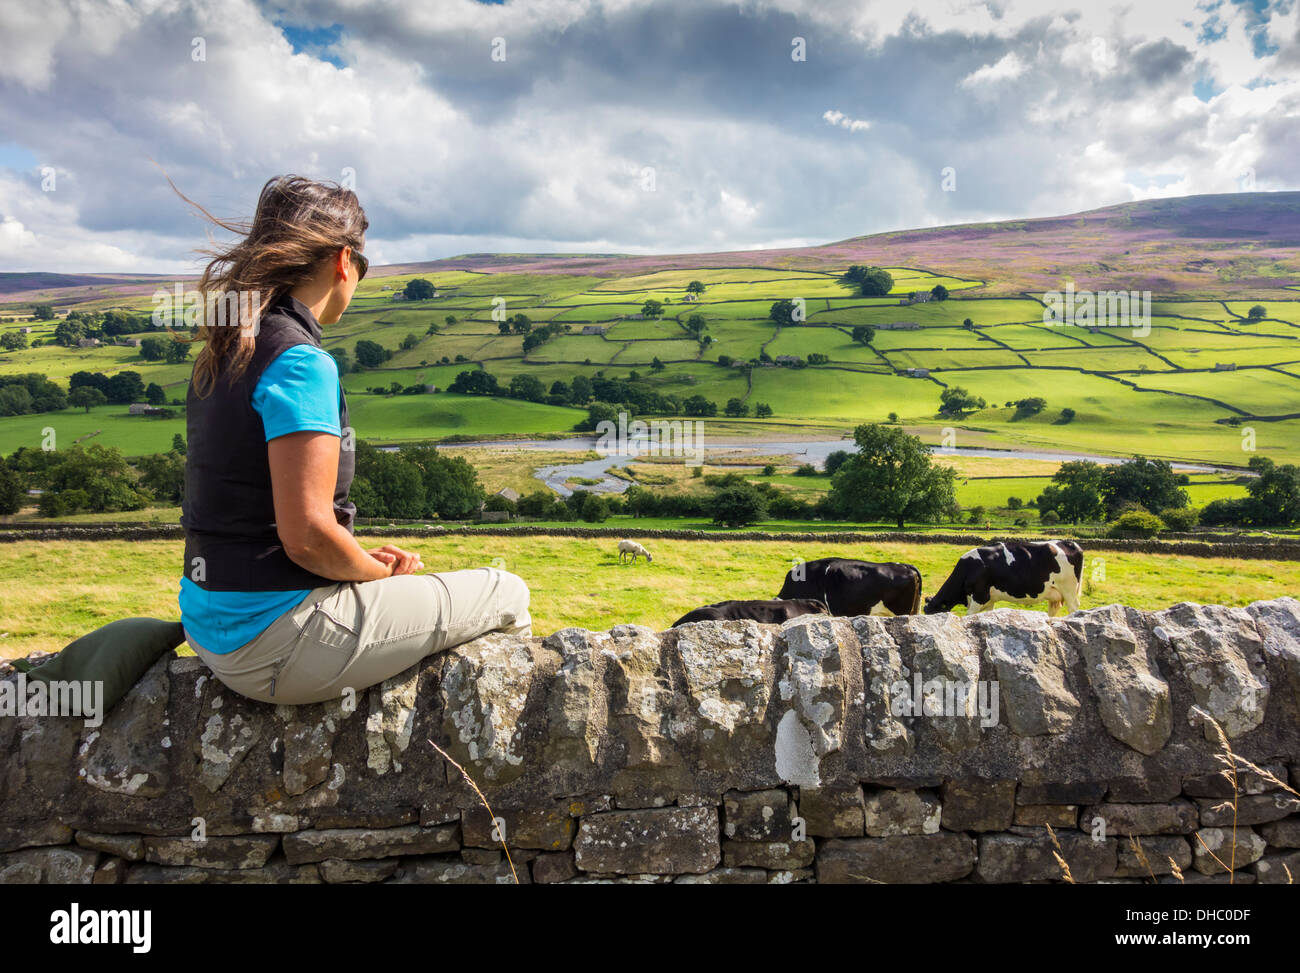 Female hiker sitting on wall near Reeth village in The Yorkshire Dales National Park, England, UK - Stock Image